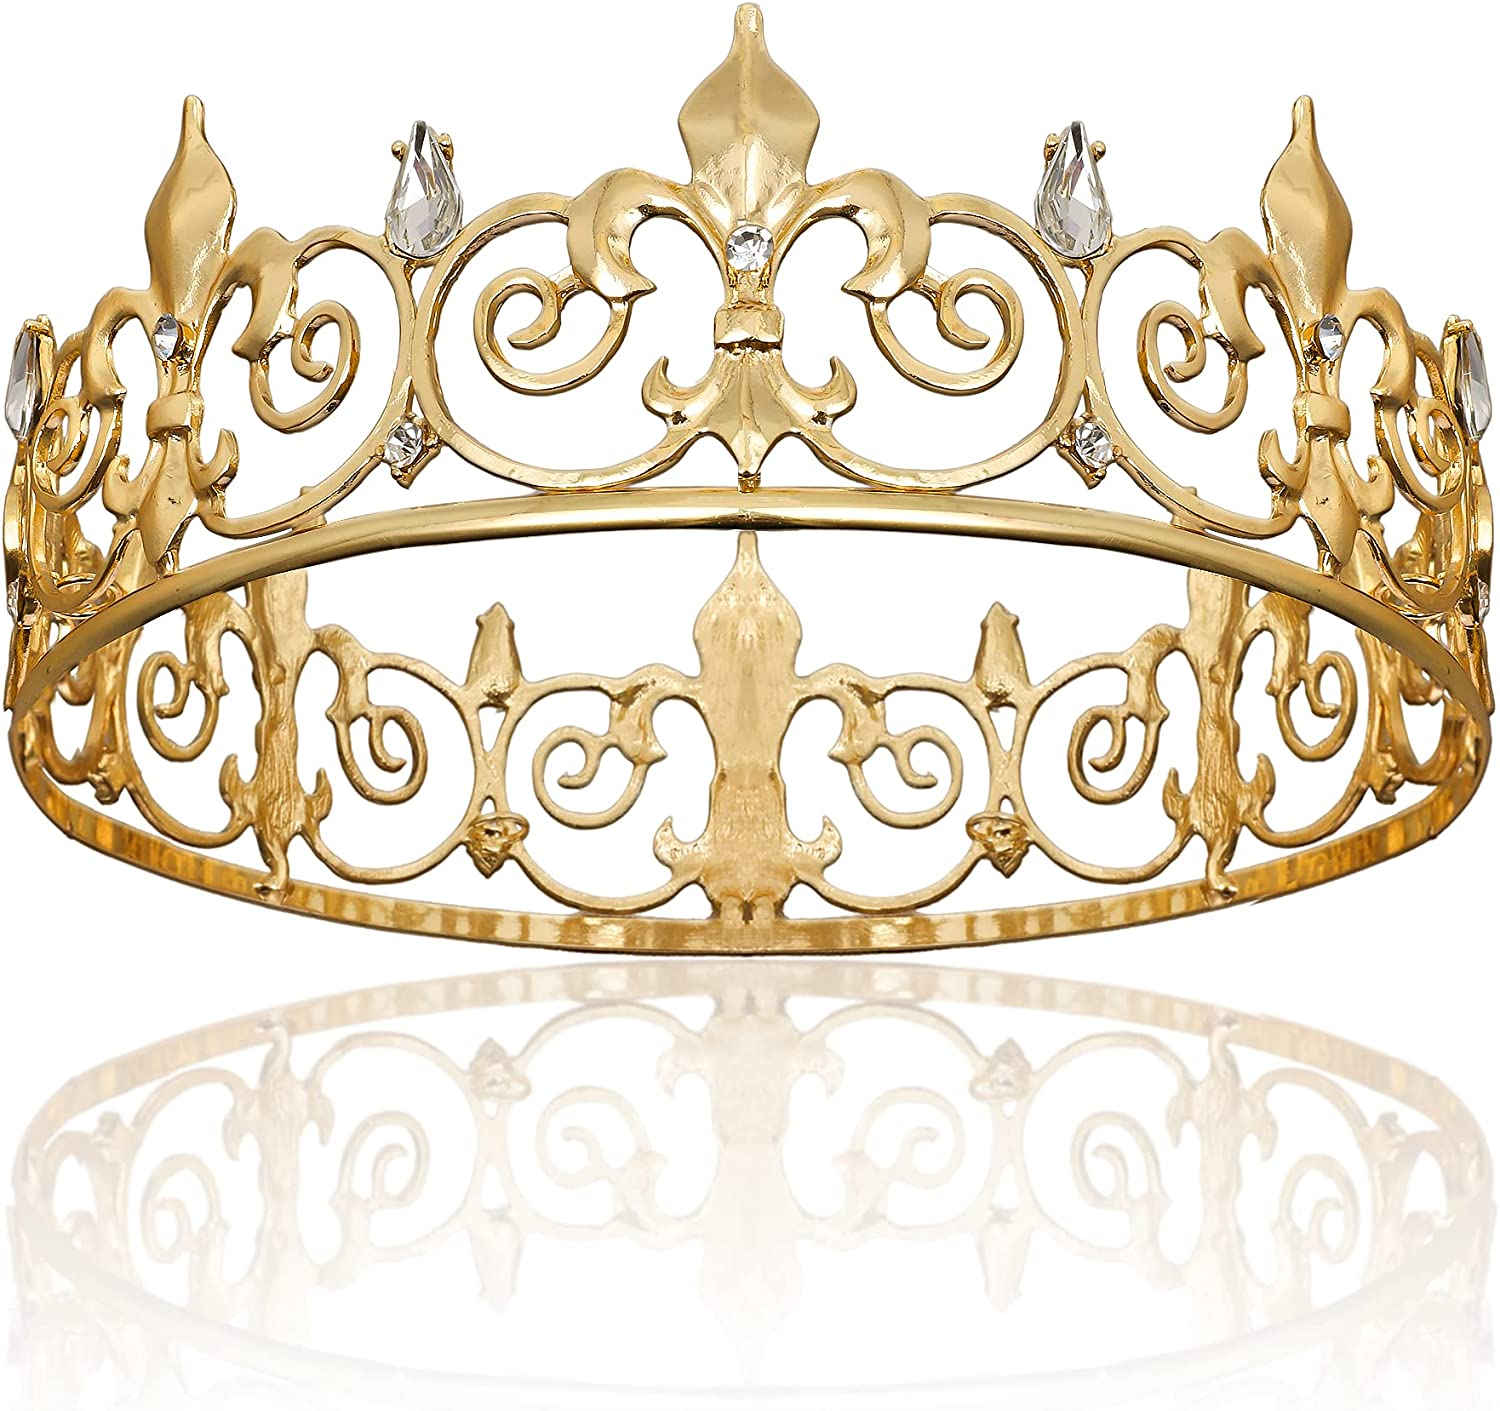 Elegant Gold King Crown for Men Prince Tiaras Metal Clearance SALE! Limited time! Royal and